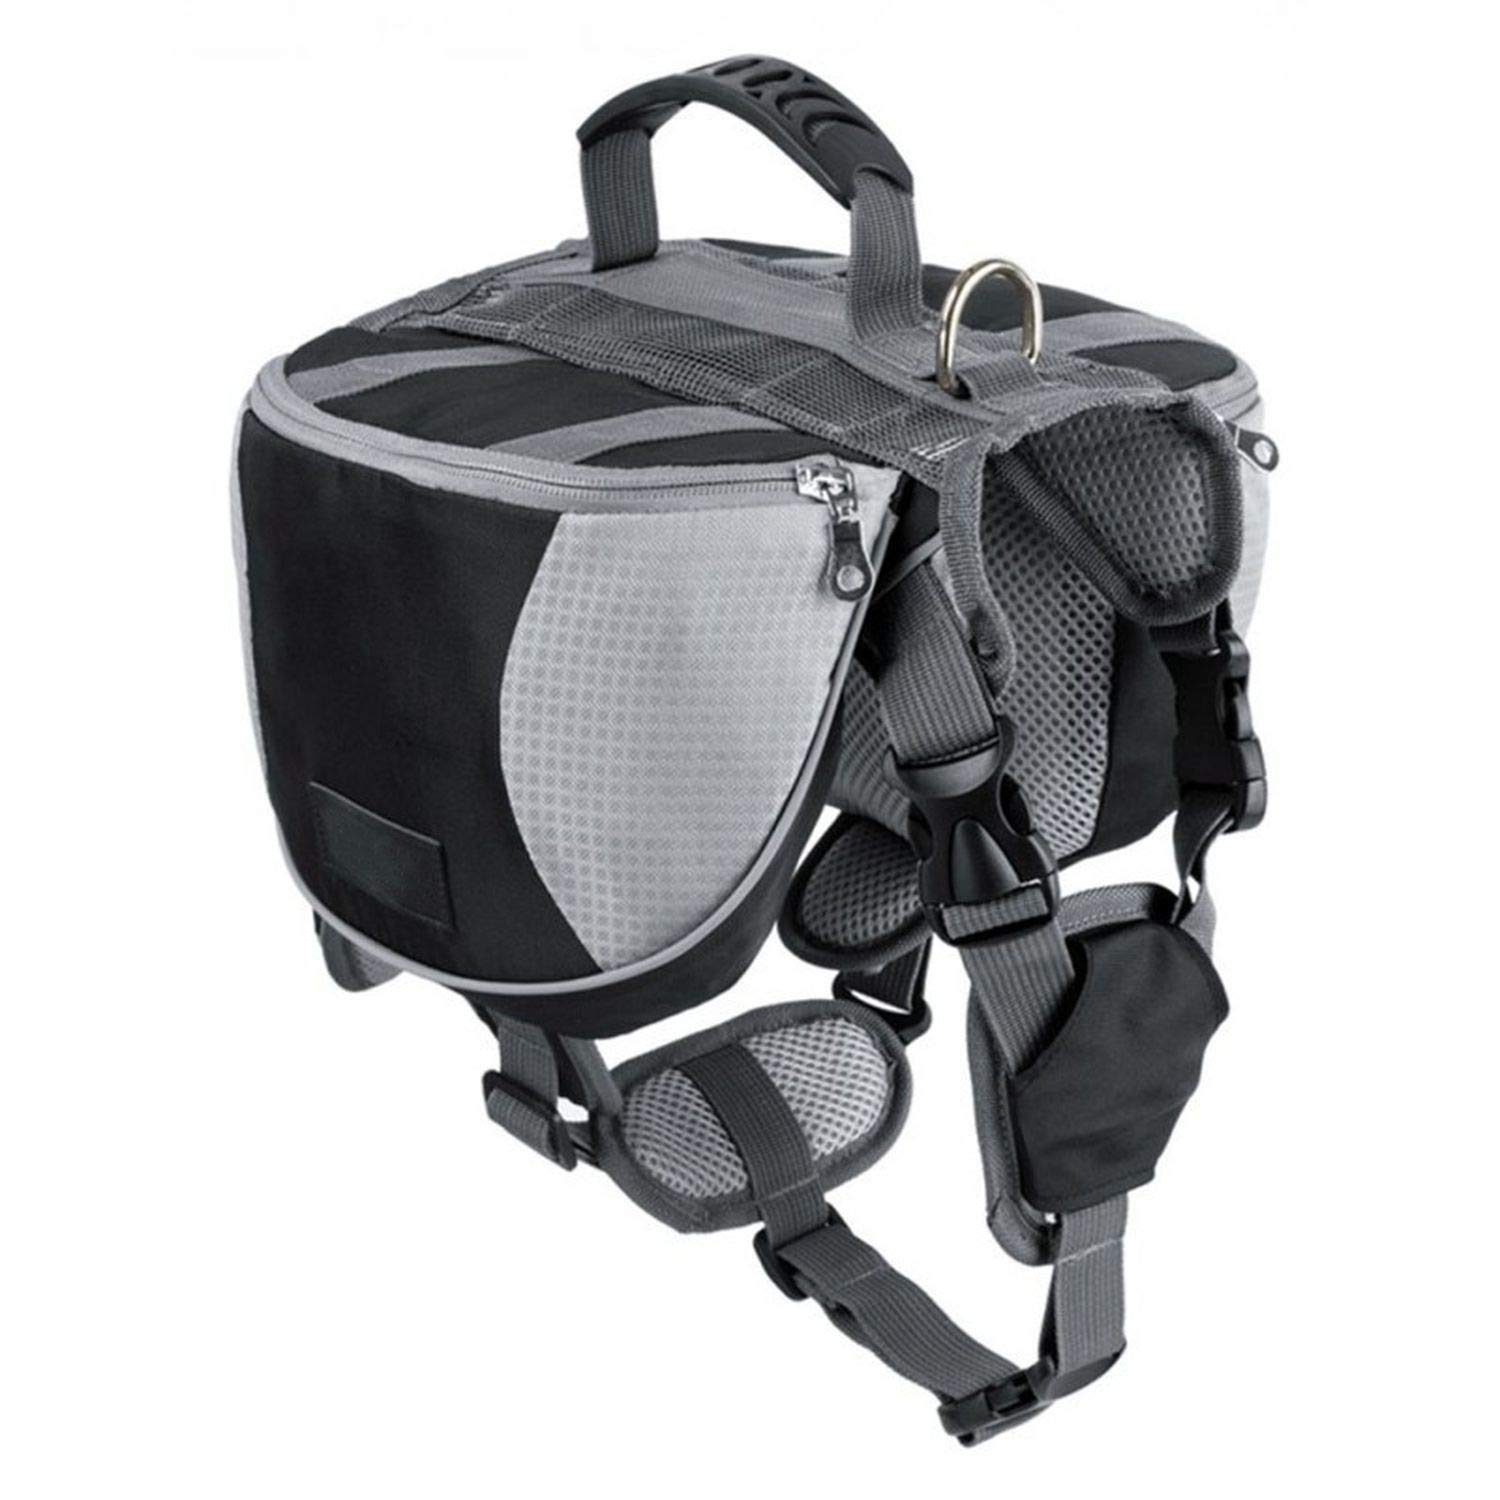 LIAOYLY Pet Outdoor Backpack Large Dog Reflective Adjustable Saddle Bag Harness Carrier Traveling Hiking Camping Safety,